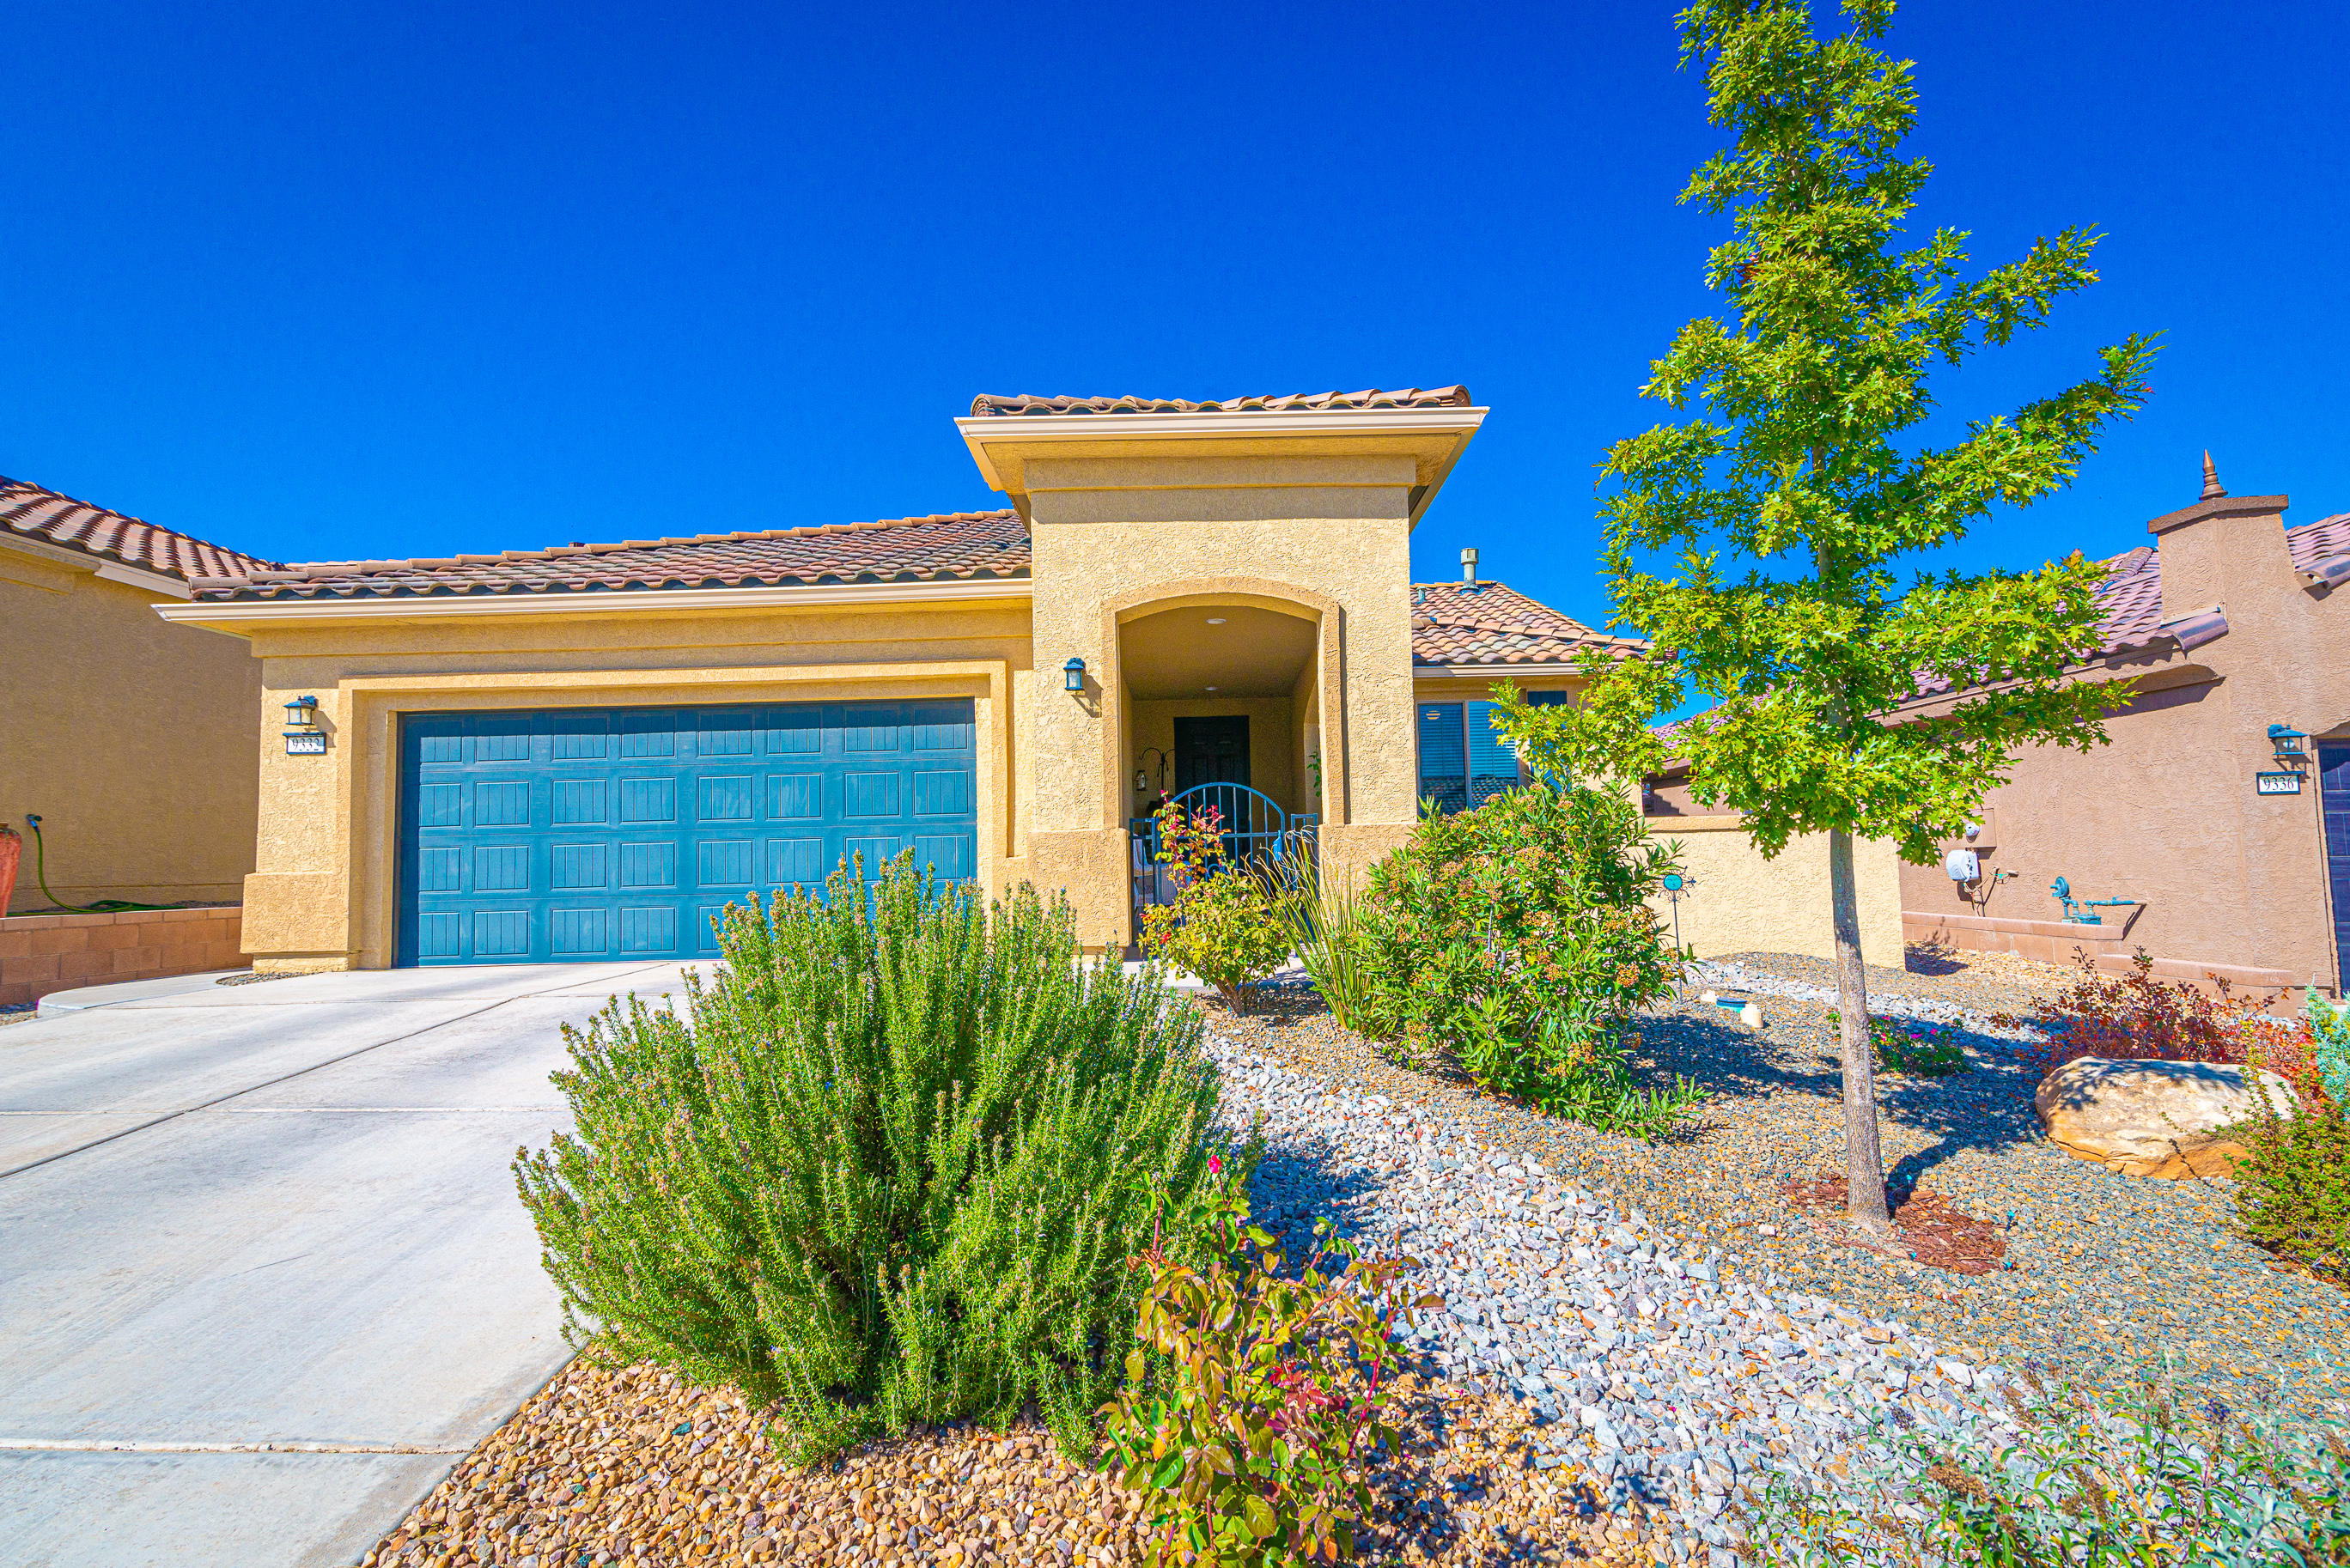 Gorgeous Light and Bright Home located in the Del Webb 55+ Community! This 'Sanctuary' model has approximately 1835 SF, 2 BR's, 2 BA's, an Office/Den or 3rd BR, Roomy 2 CG with a 4 foot extension, raised walls in the backyard for privacy plus a view of the Petroglyphs!  The kitchen has beautiful cabinetry, granite countertops,backsplash, raised dishwasher, gas cooktop, kitchen island, pull-outs, gas cooktop & pantry! Master bedroom has upgraded bay windows, coffered ceiling, large WIC, Dbl sinks, linen closet & walk-in shower! Laundry room has additional cabinets!  All Appliances Stay! Backyard was professionally landscaped with turf, arbor, stone walkway, raised garden, fountain, etc.  BBQ grill is staying and is hooked to the gas stub-out. Clubhouse offers daily activities, pool, etc